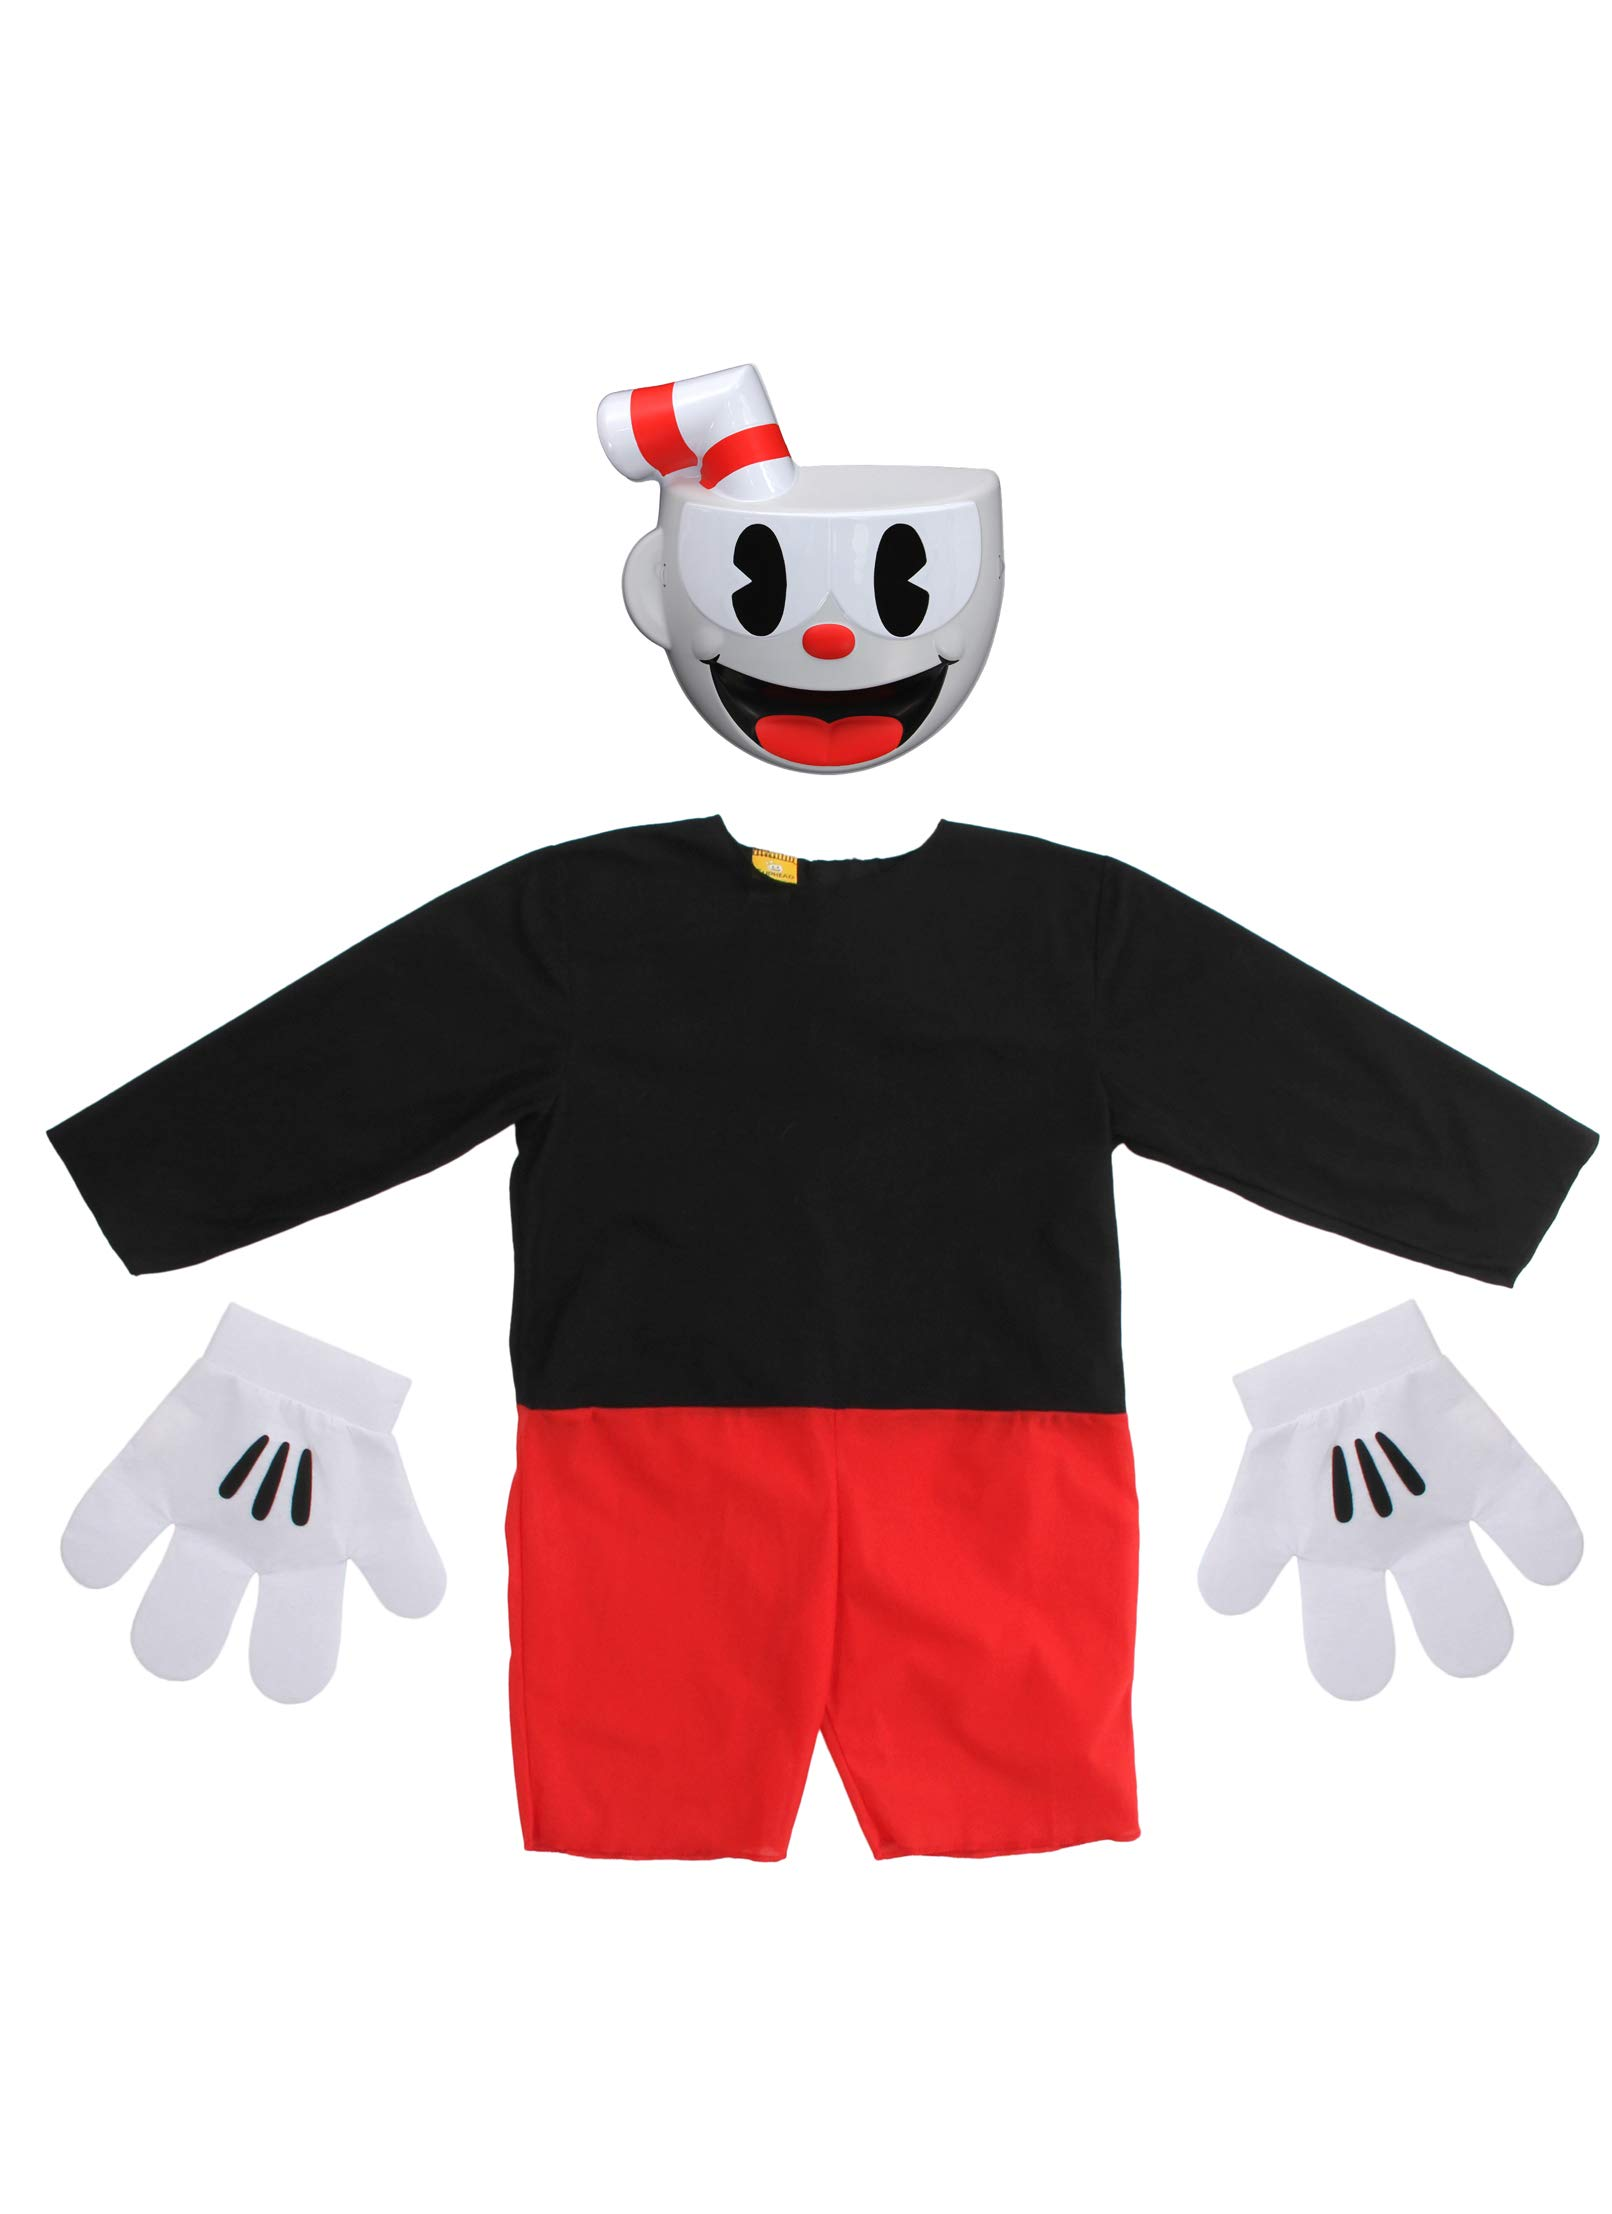 elope Cuphead Cosplay Basic Costume Kids 10-12 by elope (Image #2)